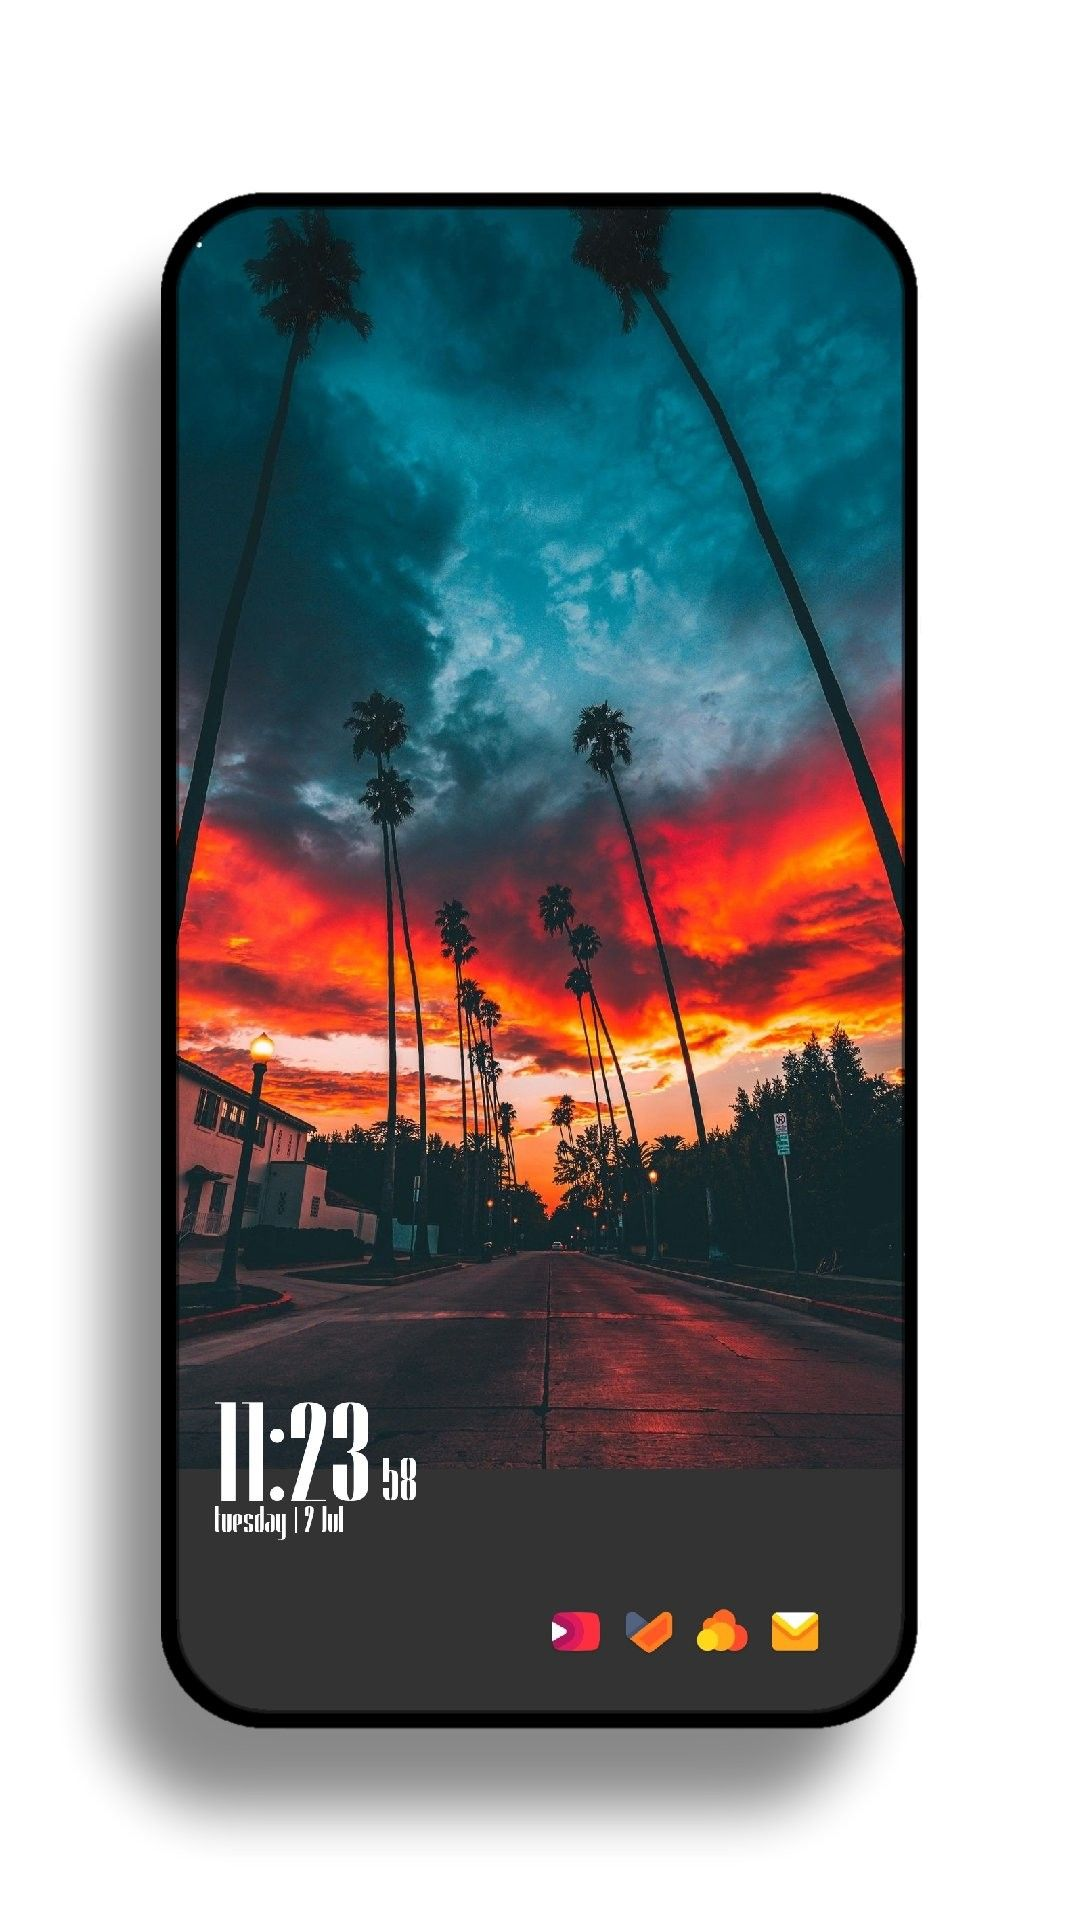 Pin by raayn on Android Mobile app design, Homescreen